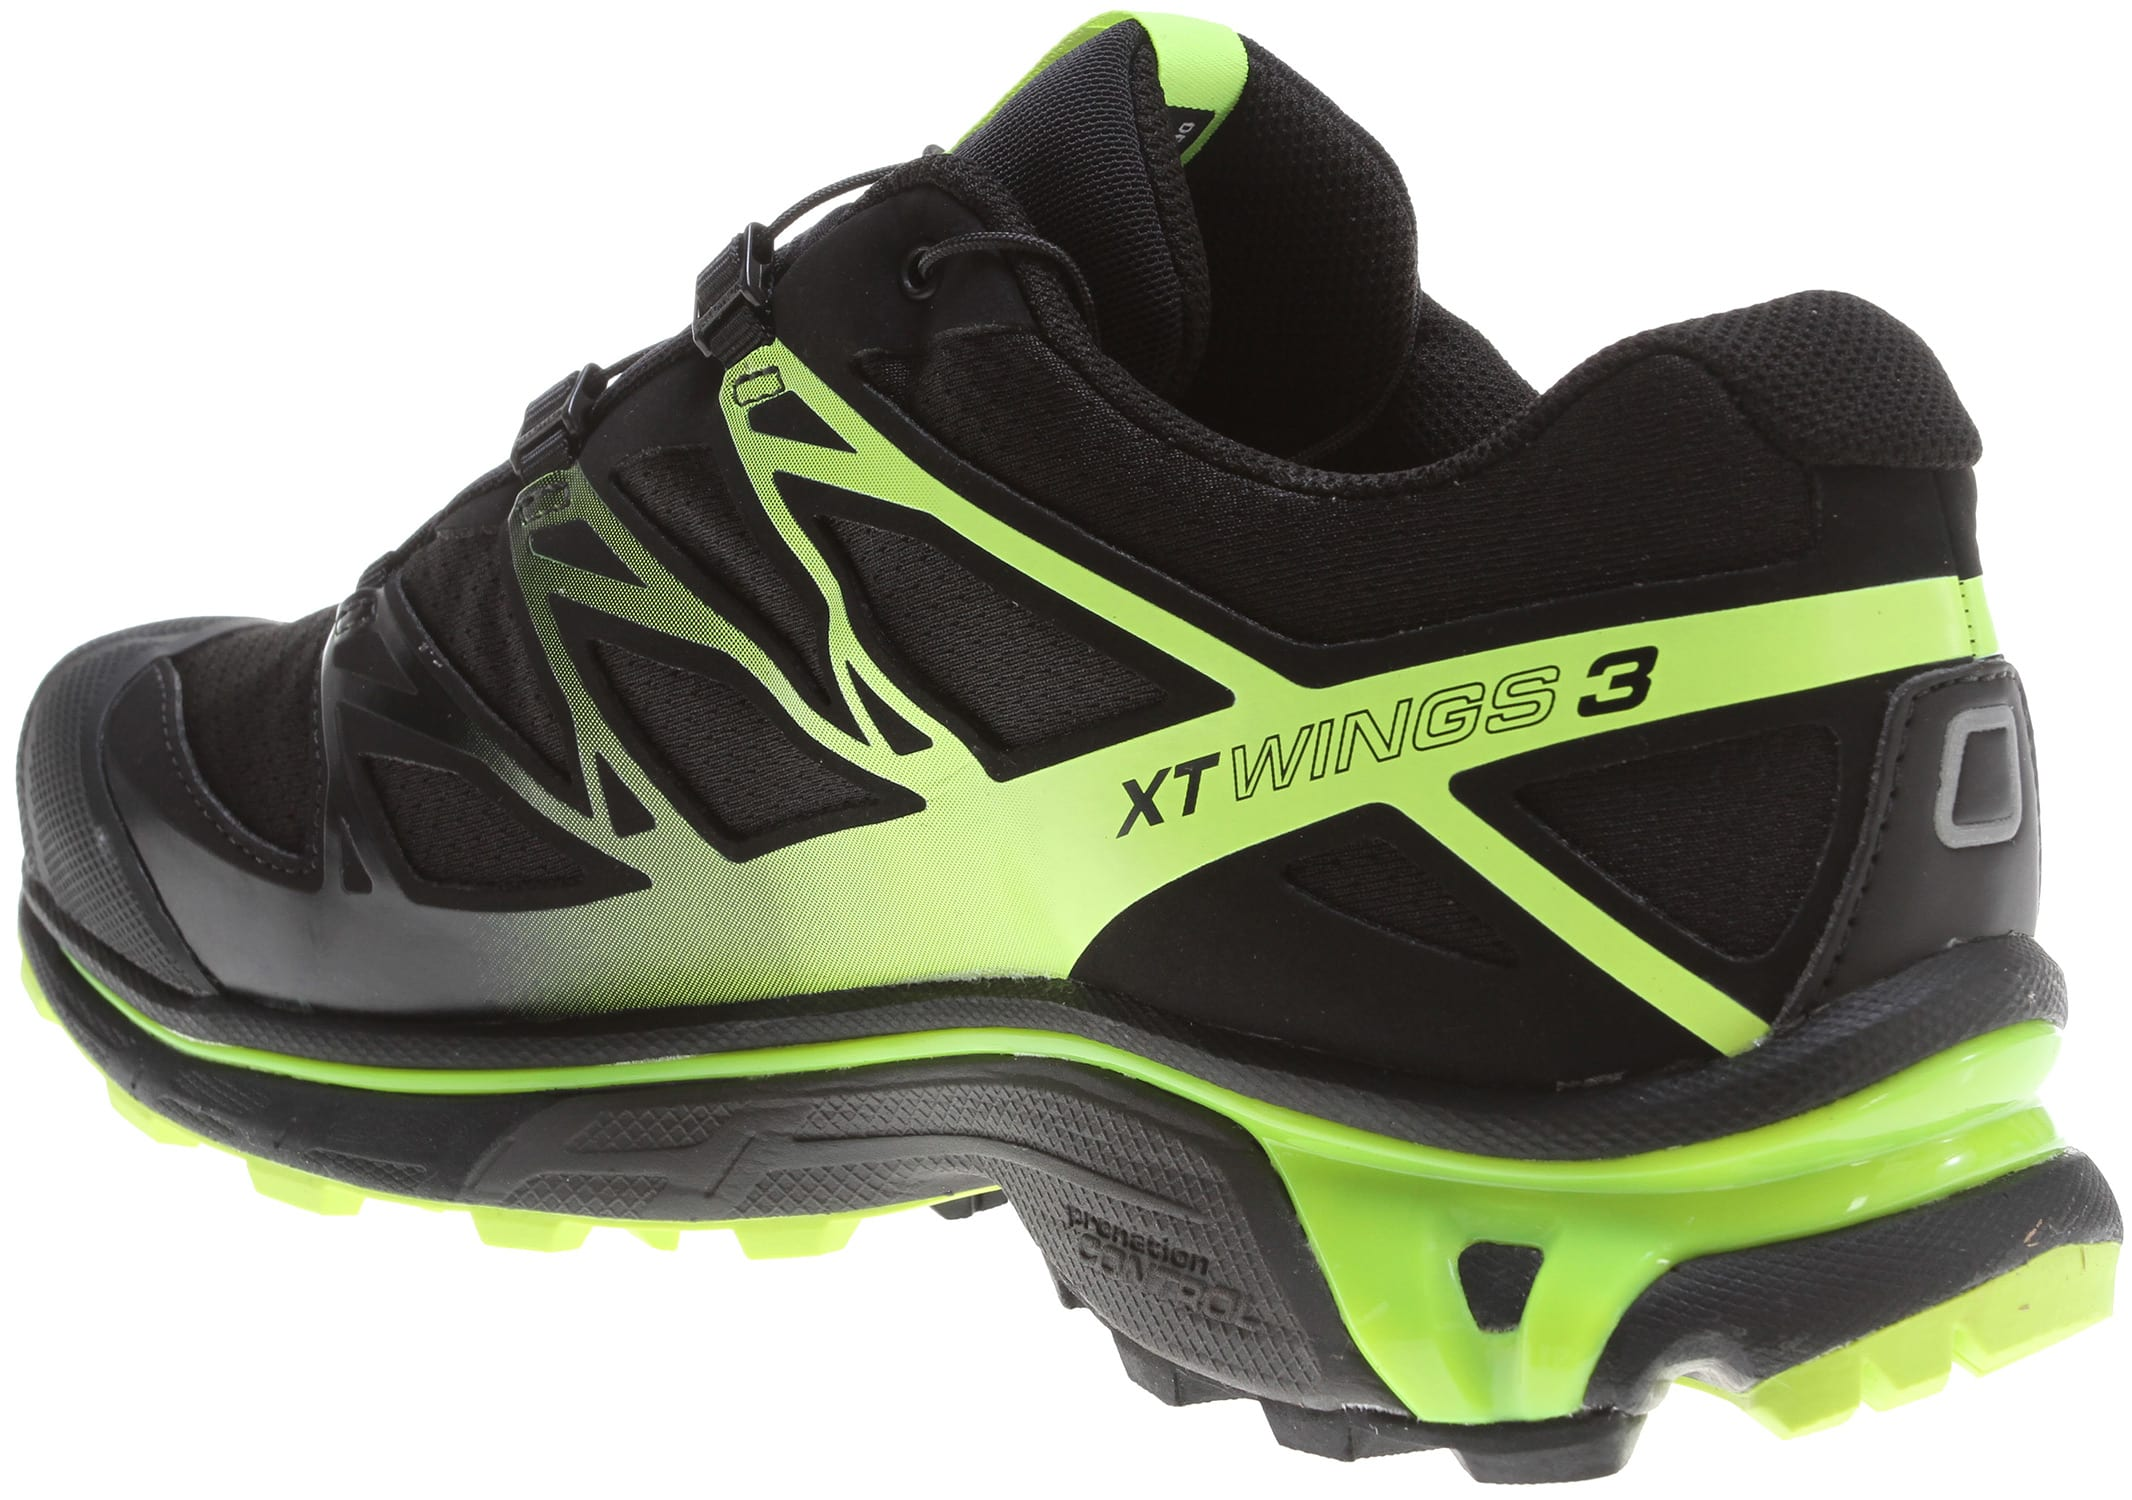 4c5d21659ef Salomon XT Wings 3 Shoes - thumbnail 3